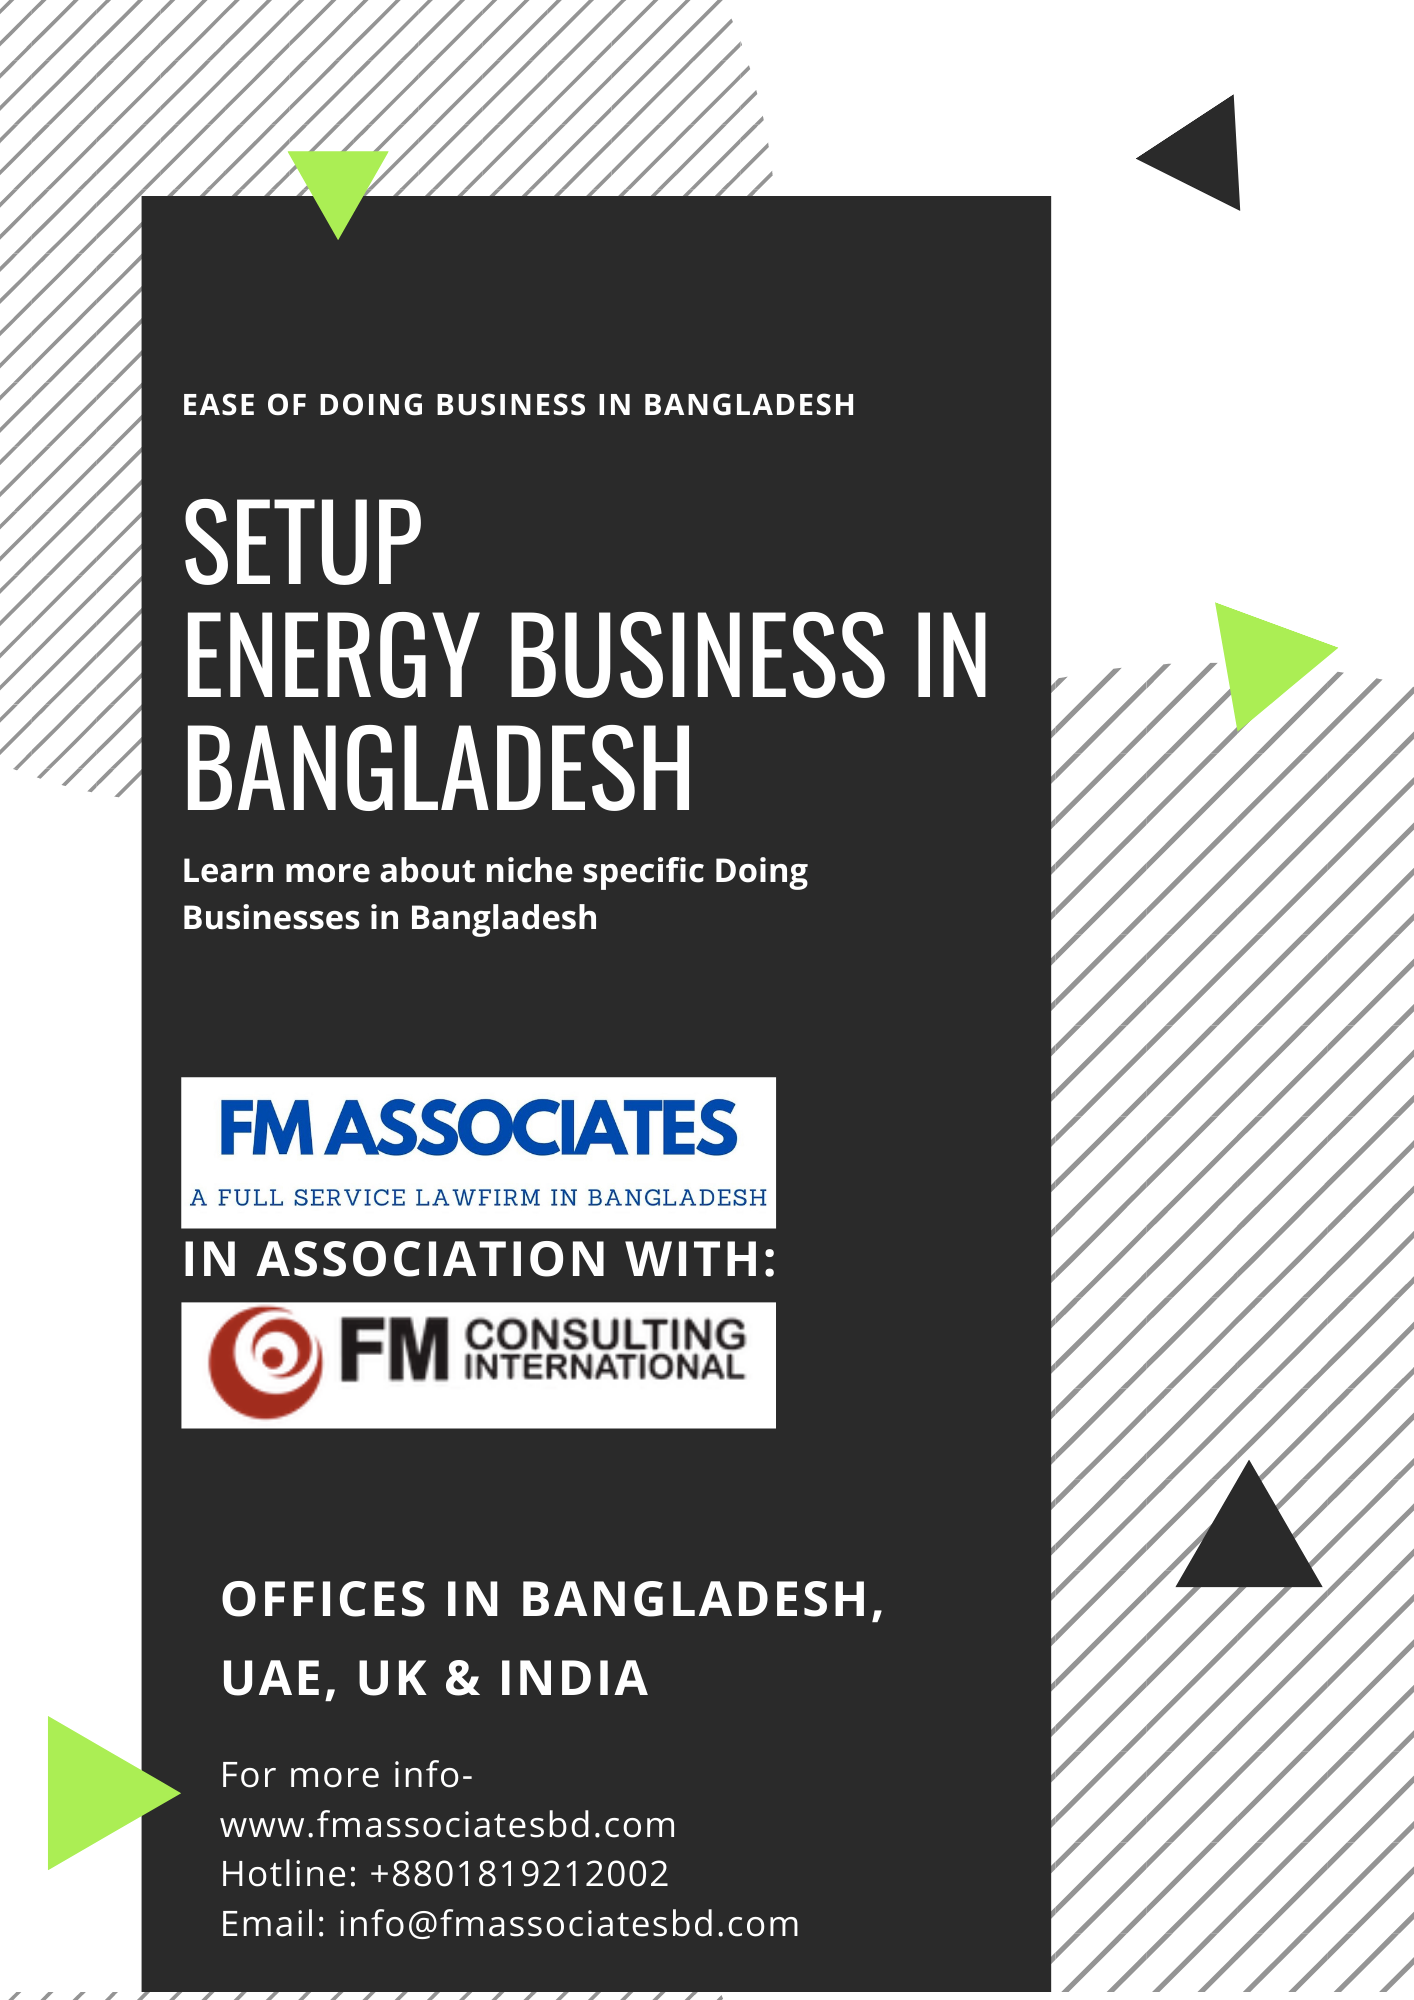 How to Setup Energy Business in Bangladesh